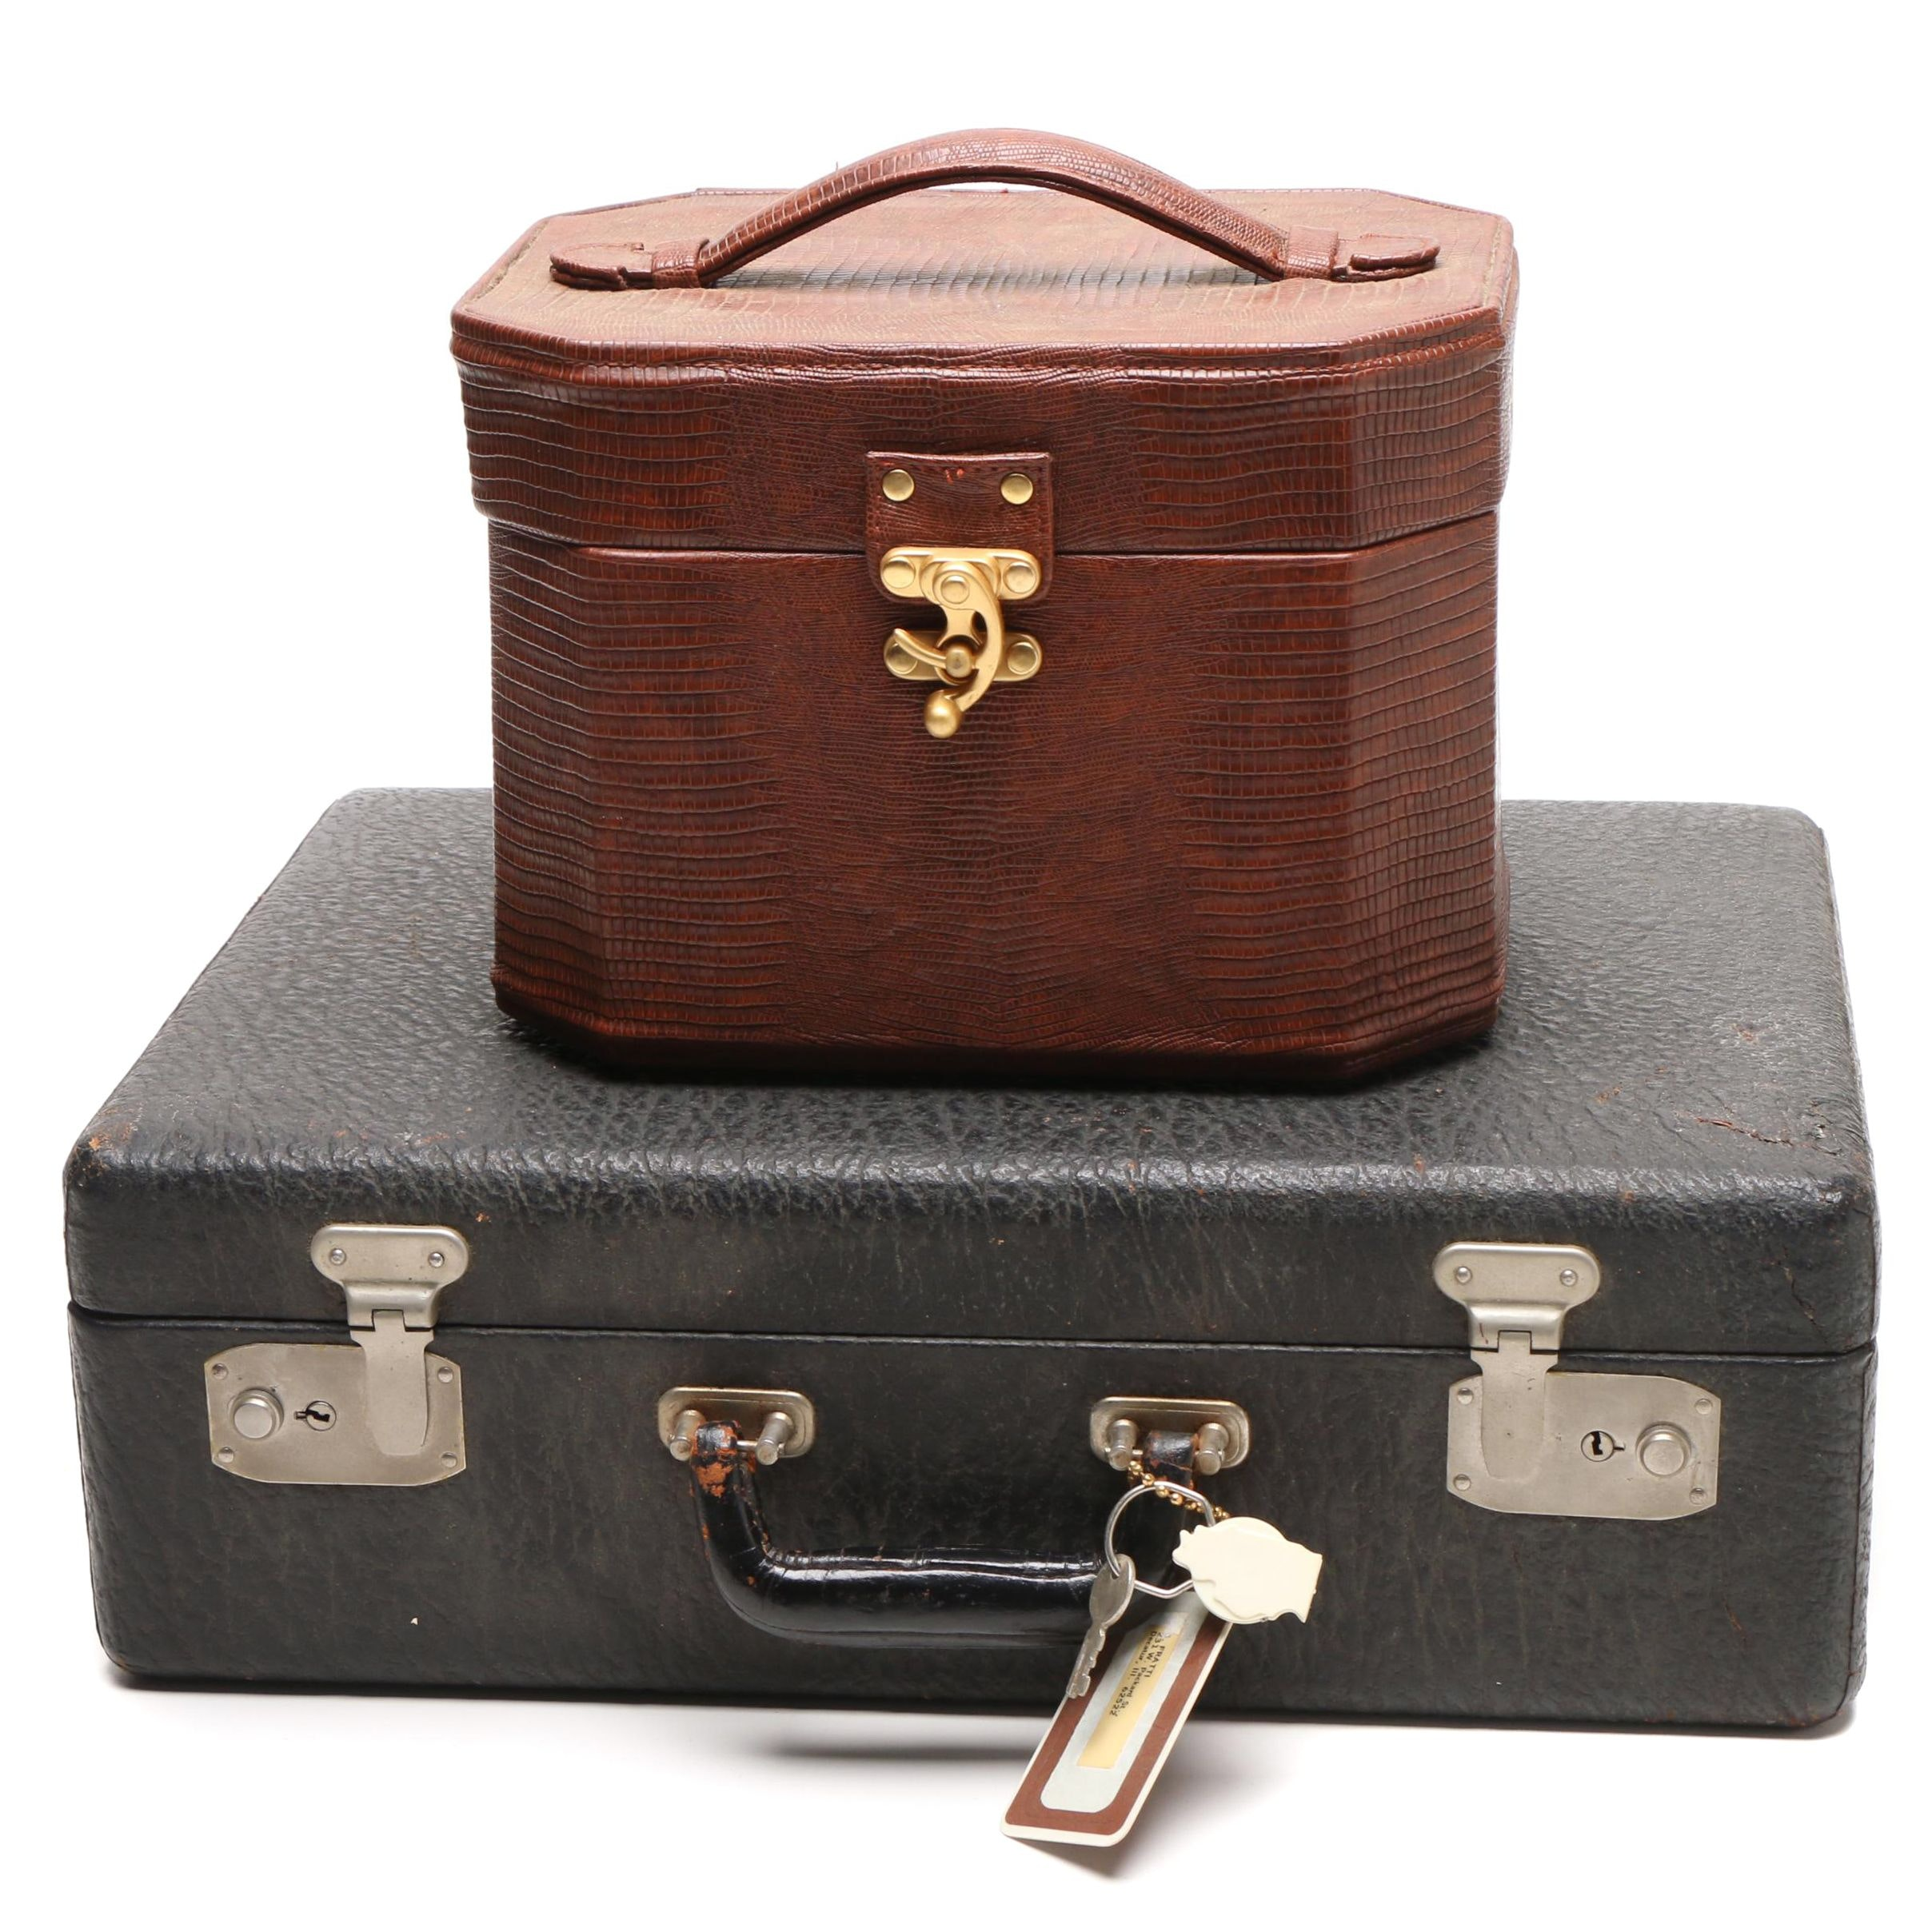 Women's Vintage Textured and Embossed Travel Cases with Accessories